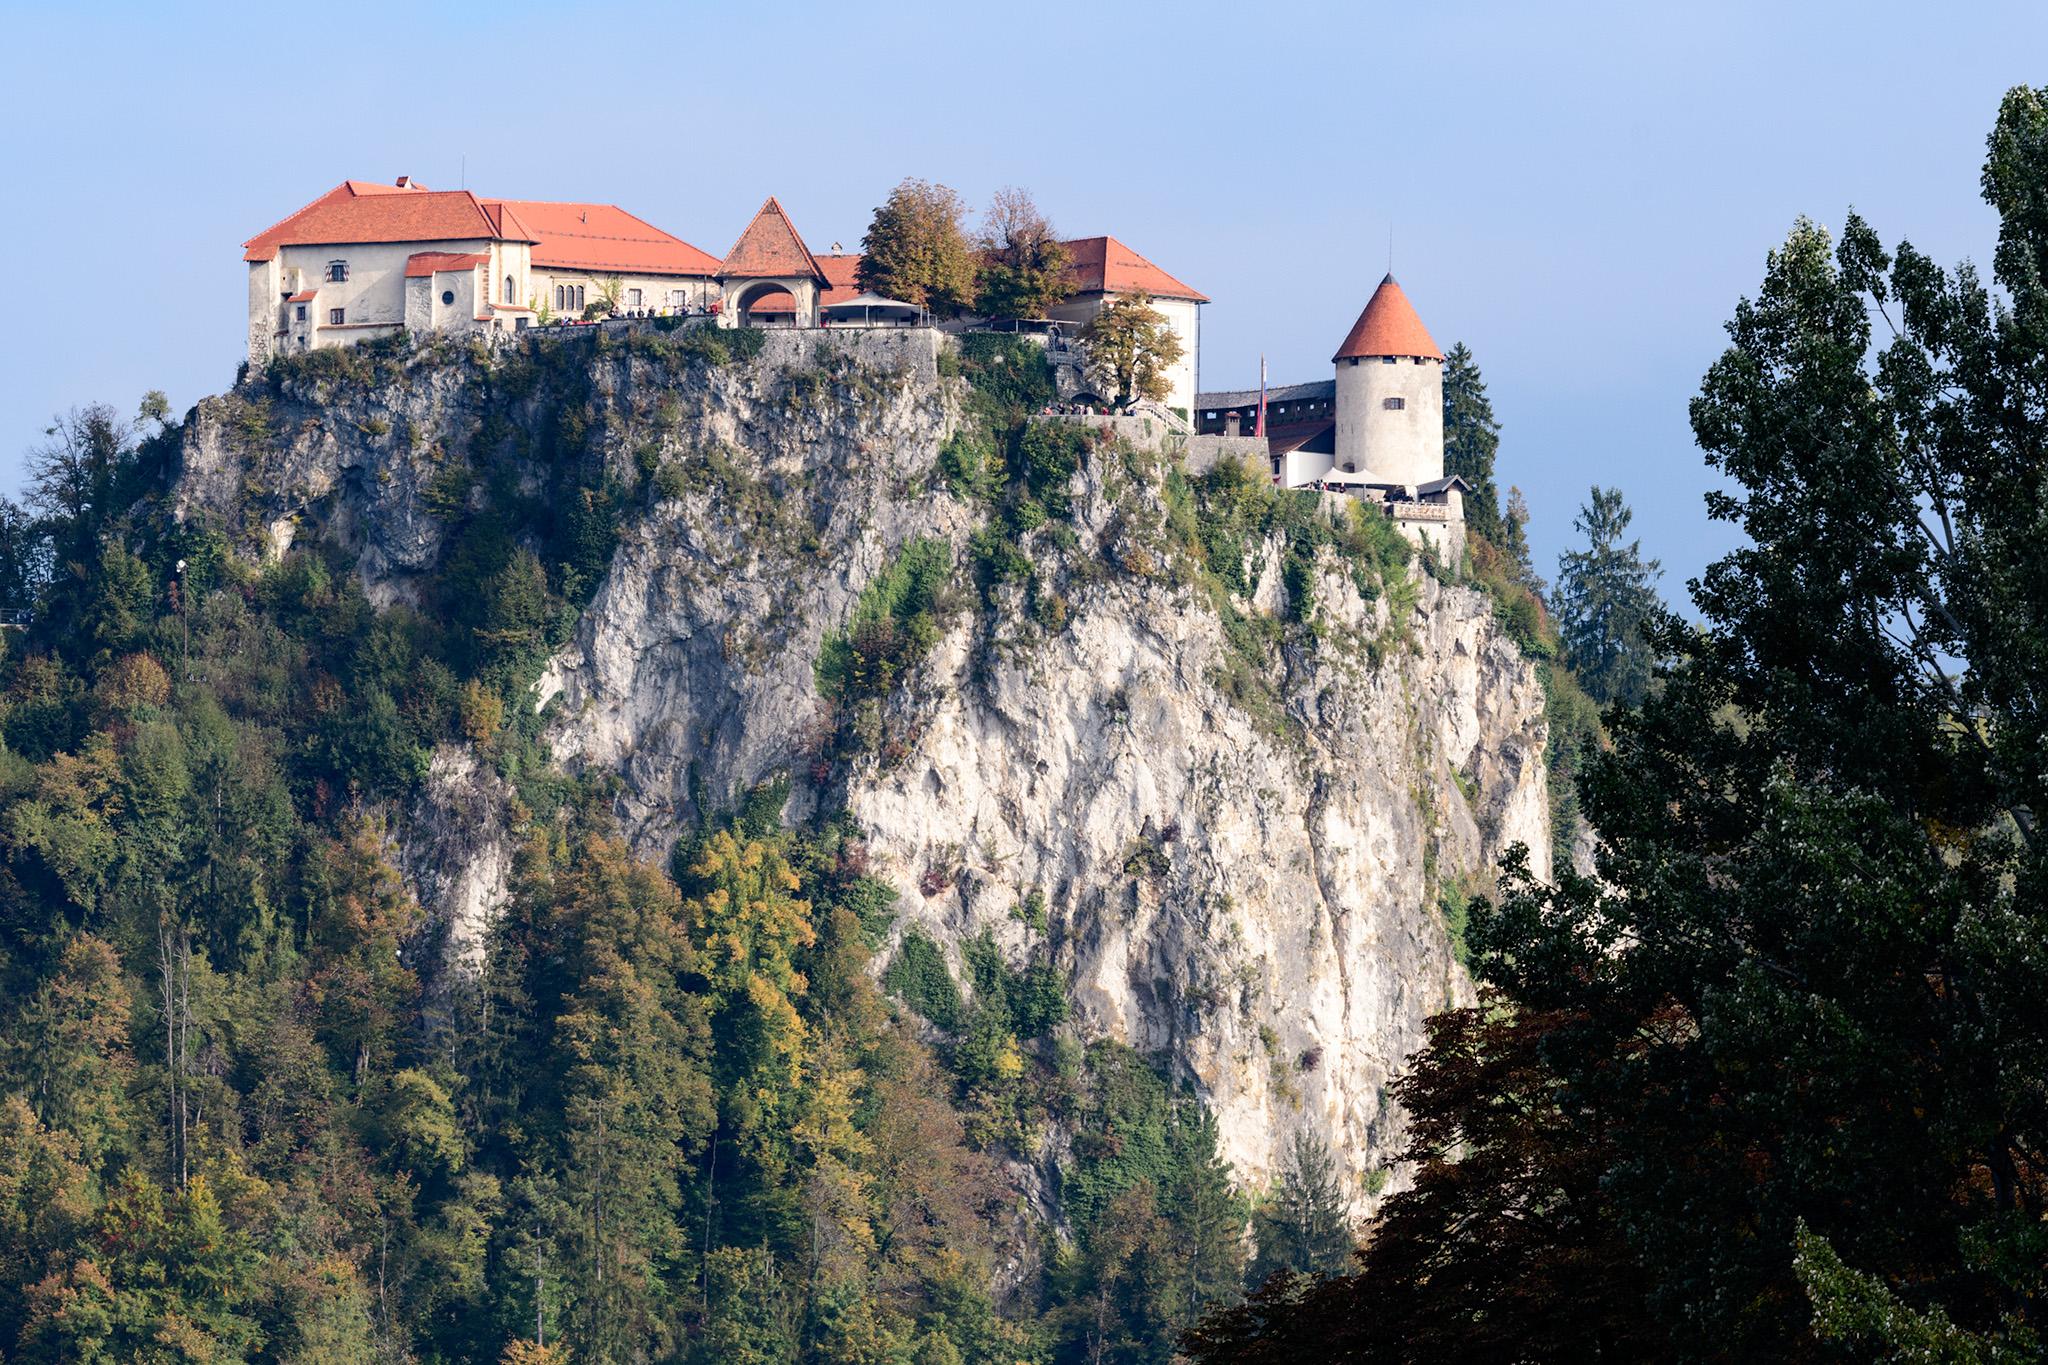 Bled Castle- Click on any photo below to expand